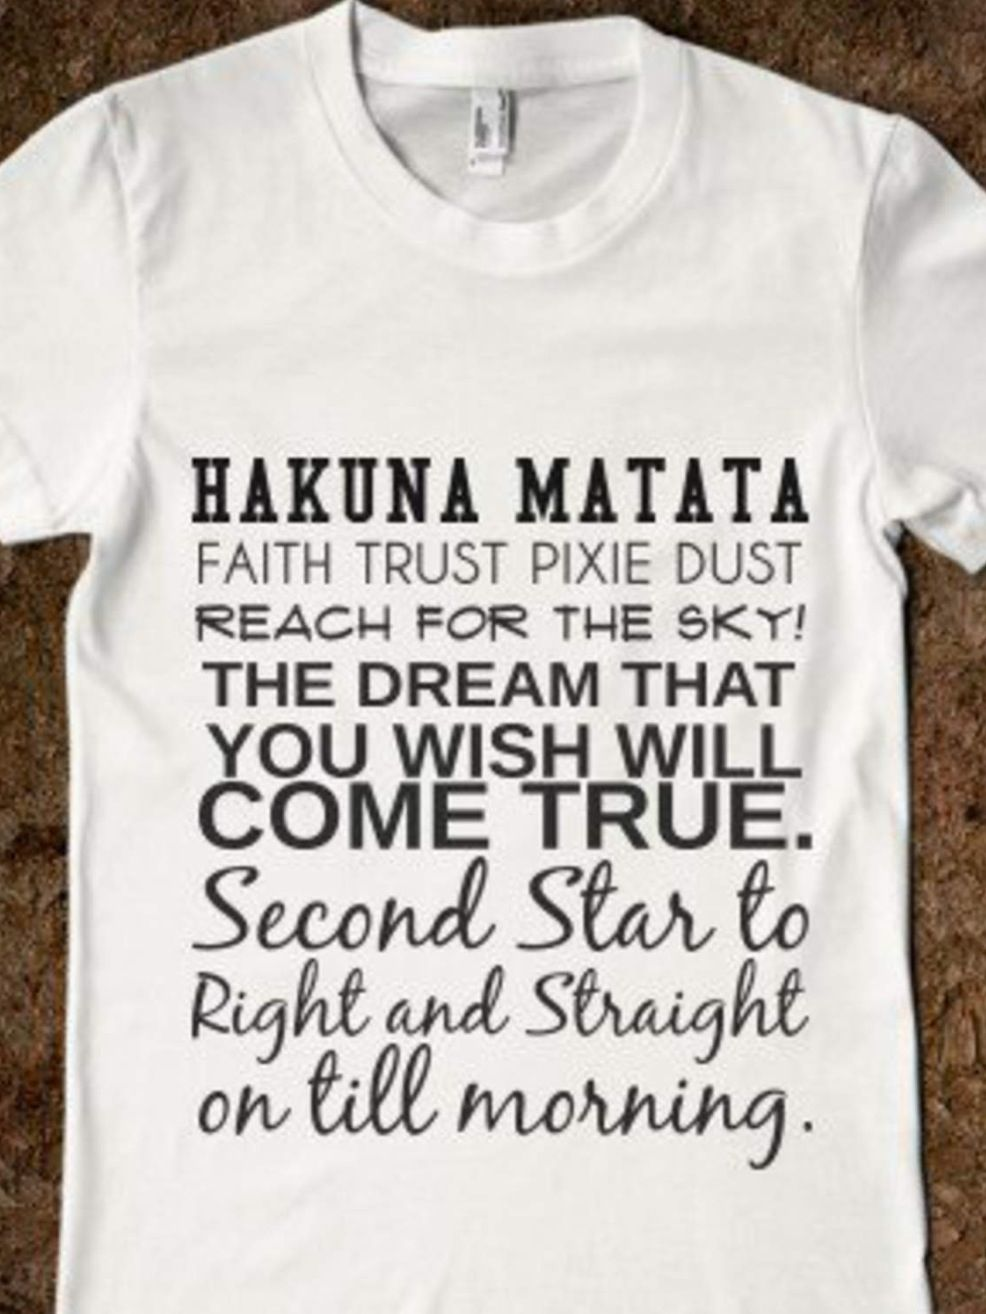 Oh My A Disney Quote Shirt I Am Freaking Out I Seriously Love This Disney Quote Shirts Movie Quote Shirts Quotes Disney